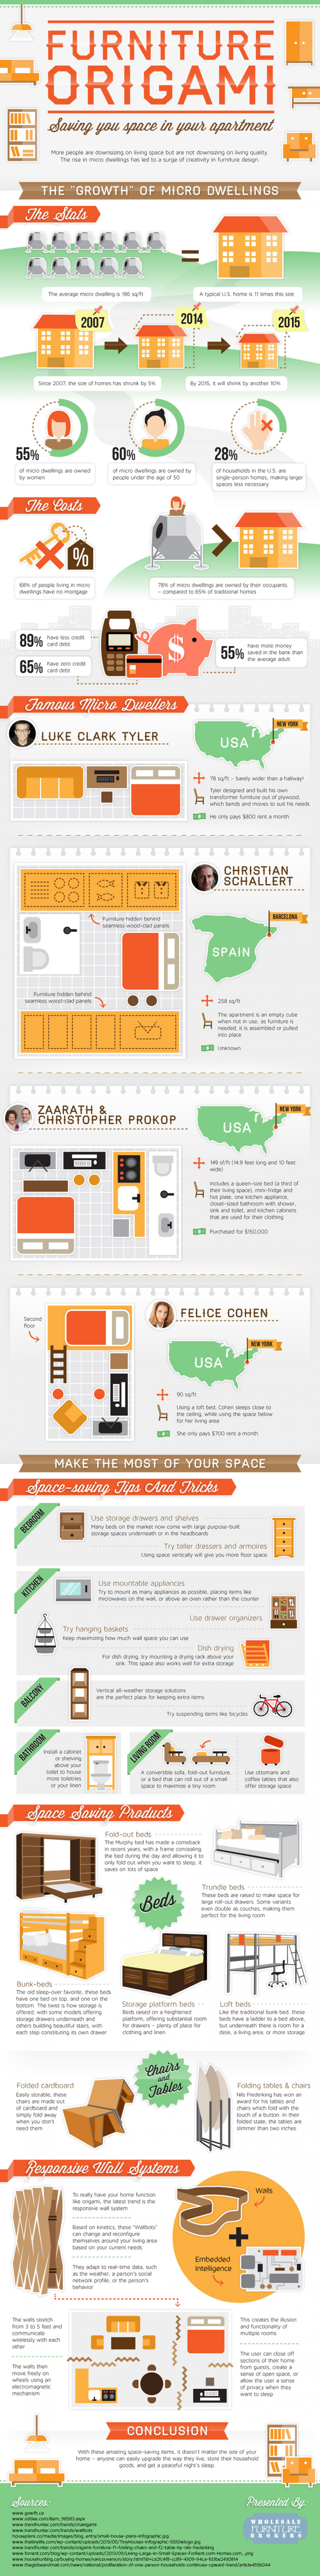 Furniture Origami: Saving Space in Your Apartment Infographic